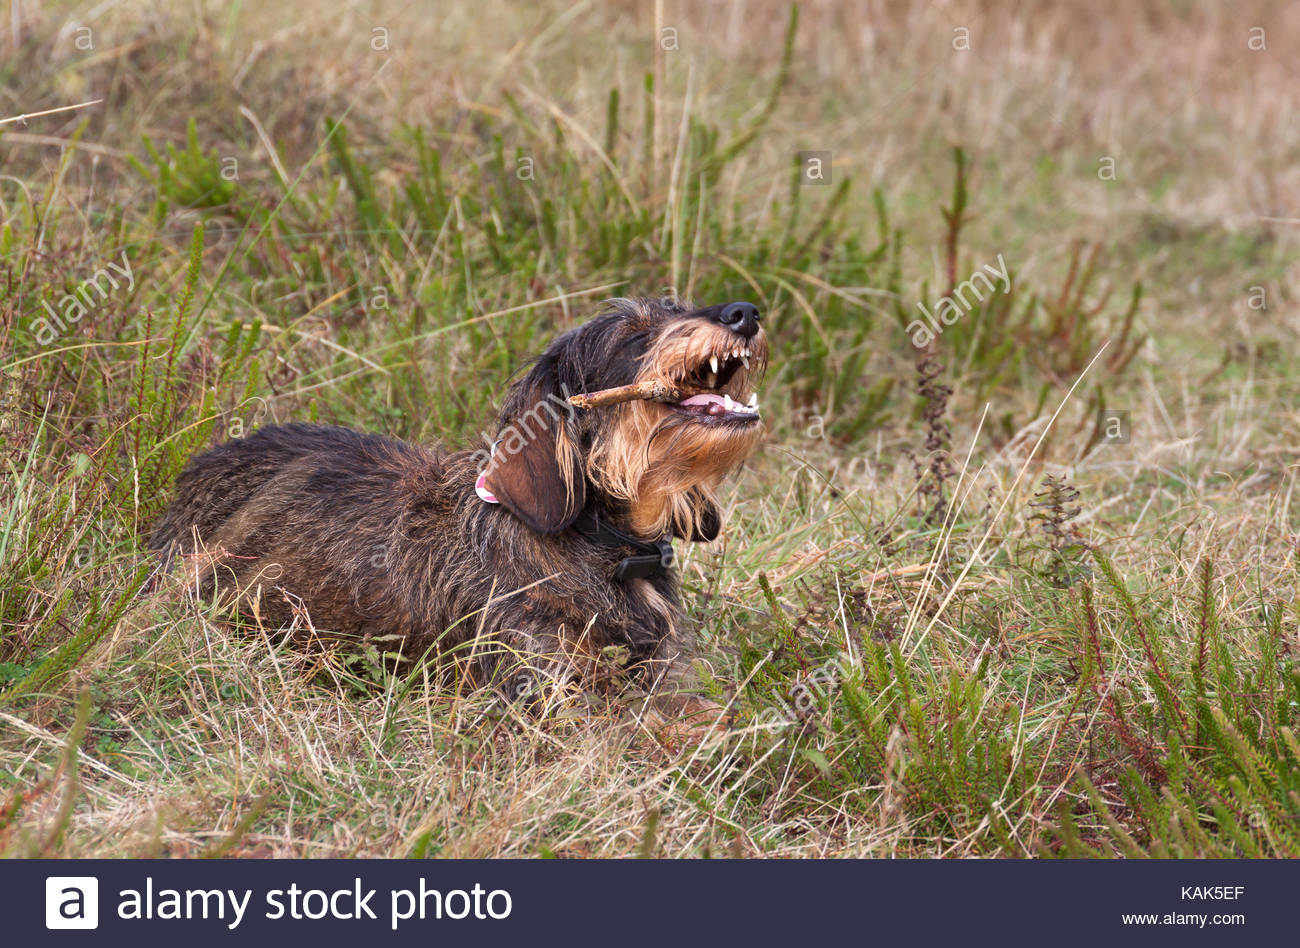 Cute, shaggy dachshund with long fur chews on a wooden stick. - Stock Image